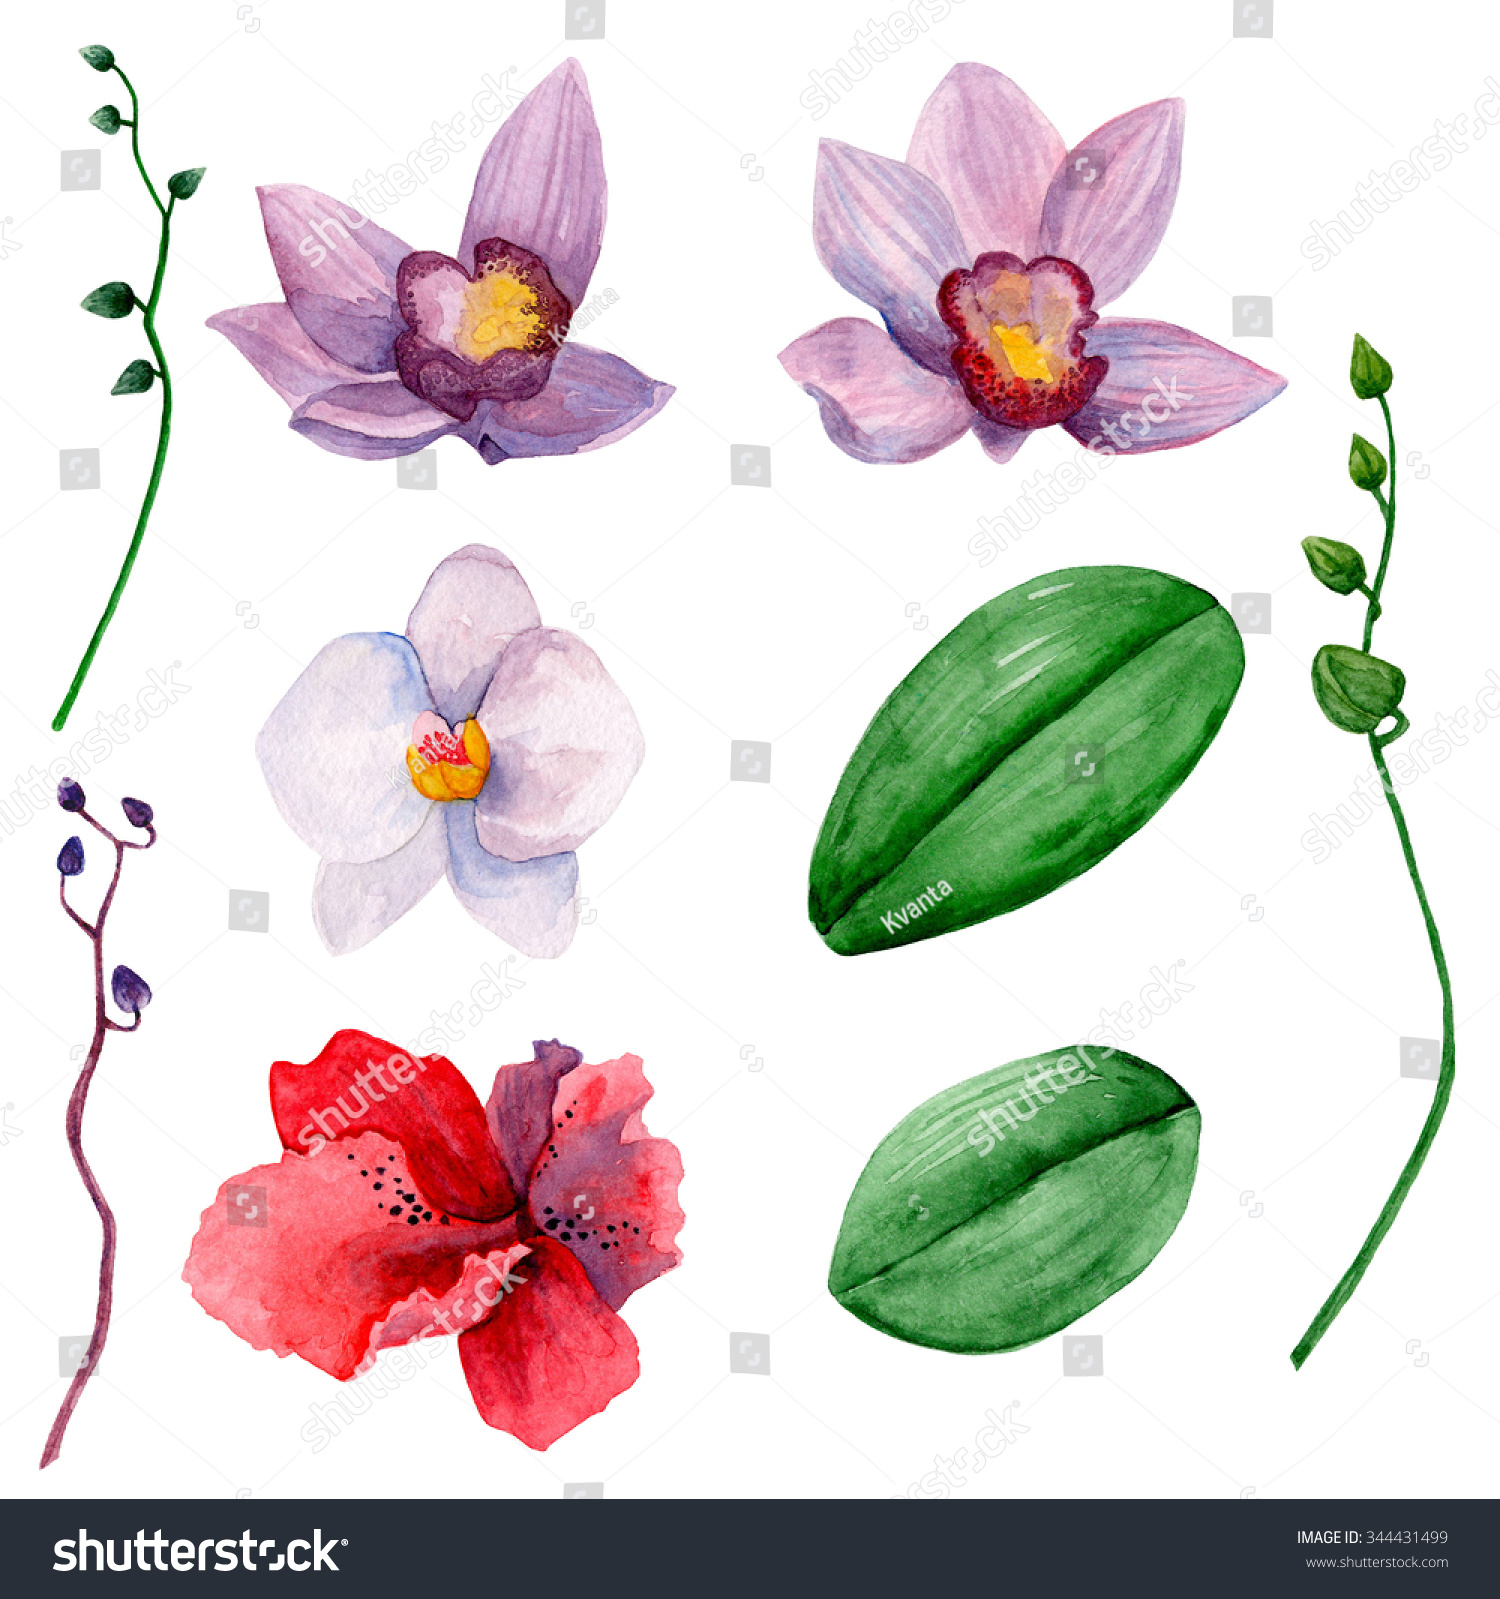 Hawaiian flowers clipart watercolor orchids clip stock illustration hawaiian flowers clipart watercolor orchids clip art izmirmasajfo